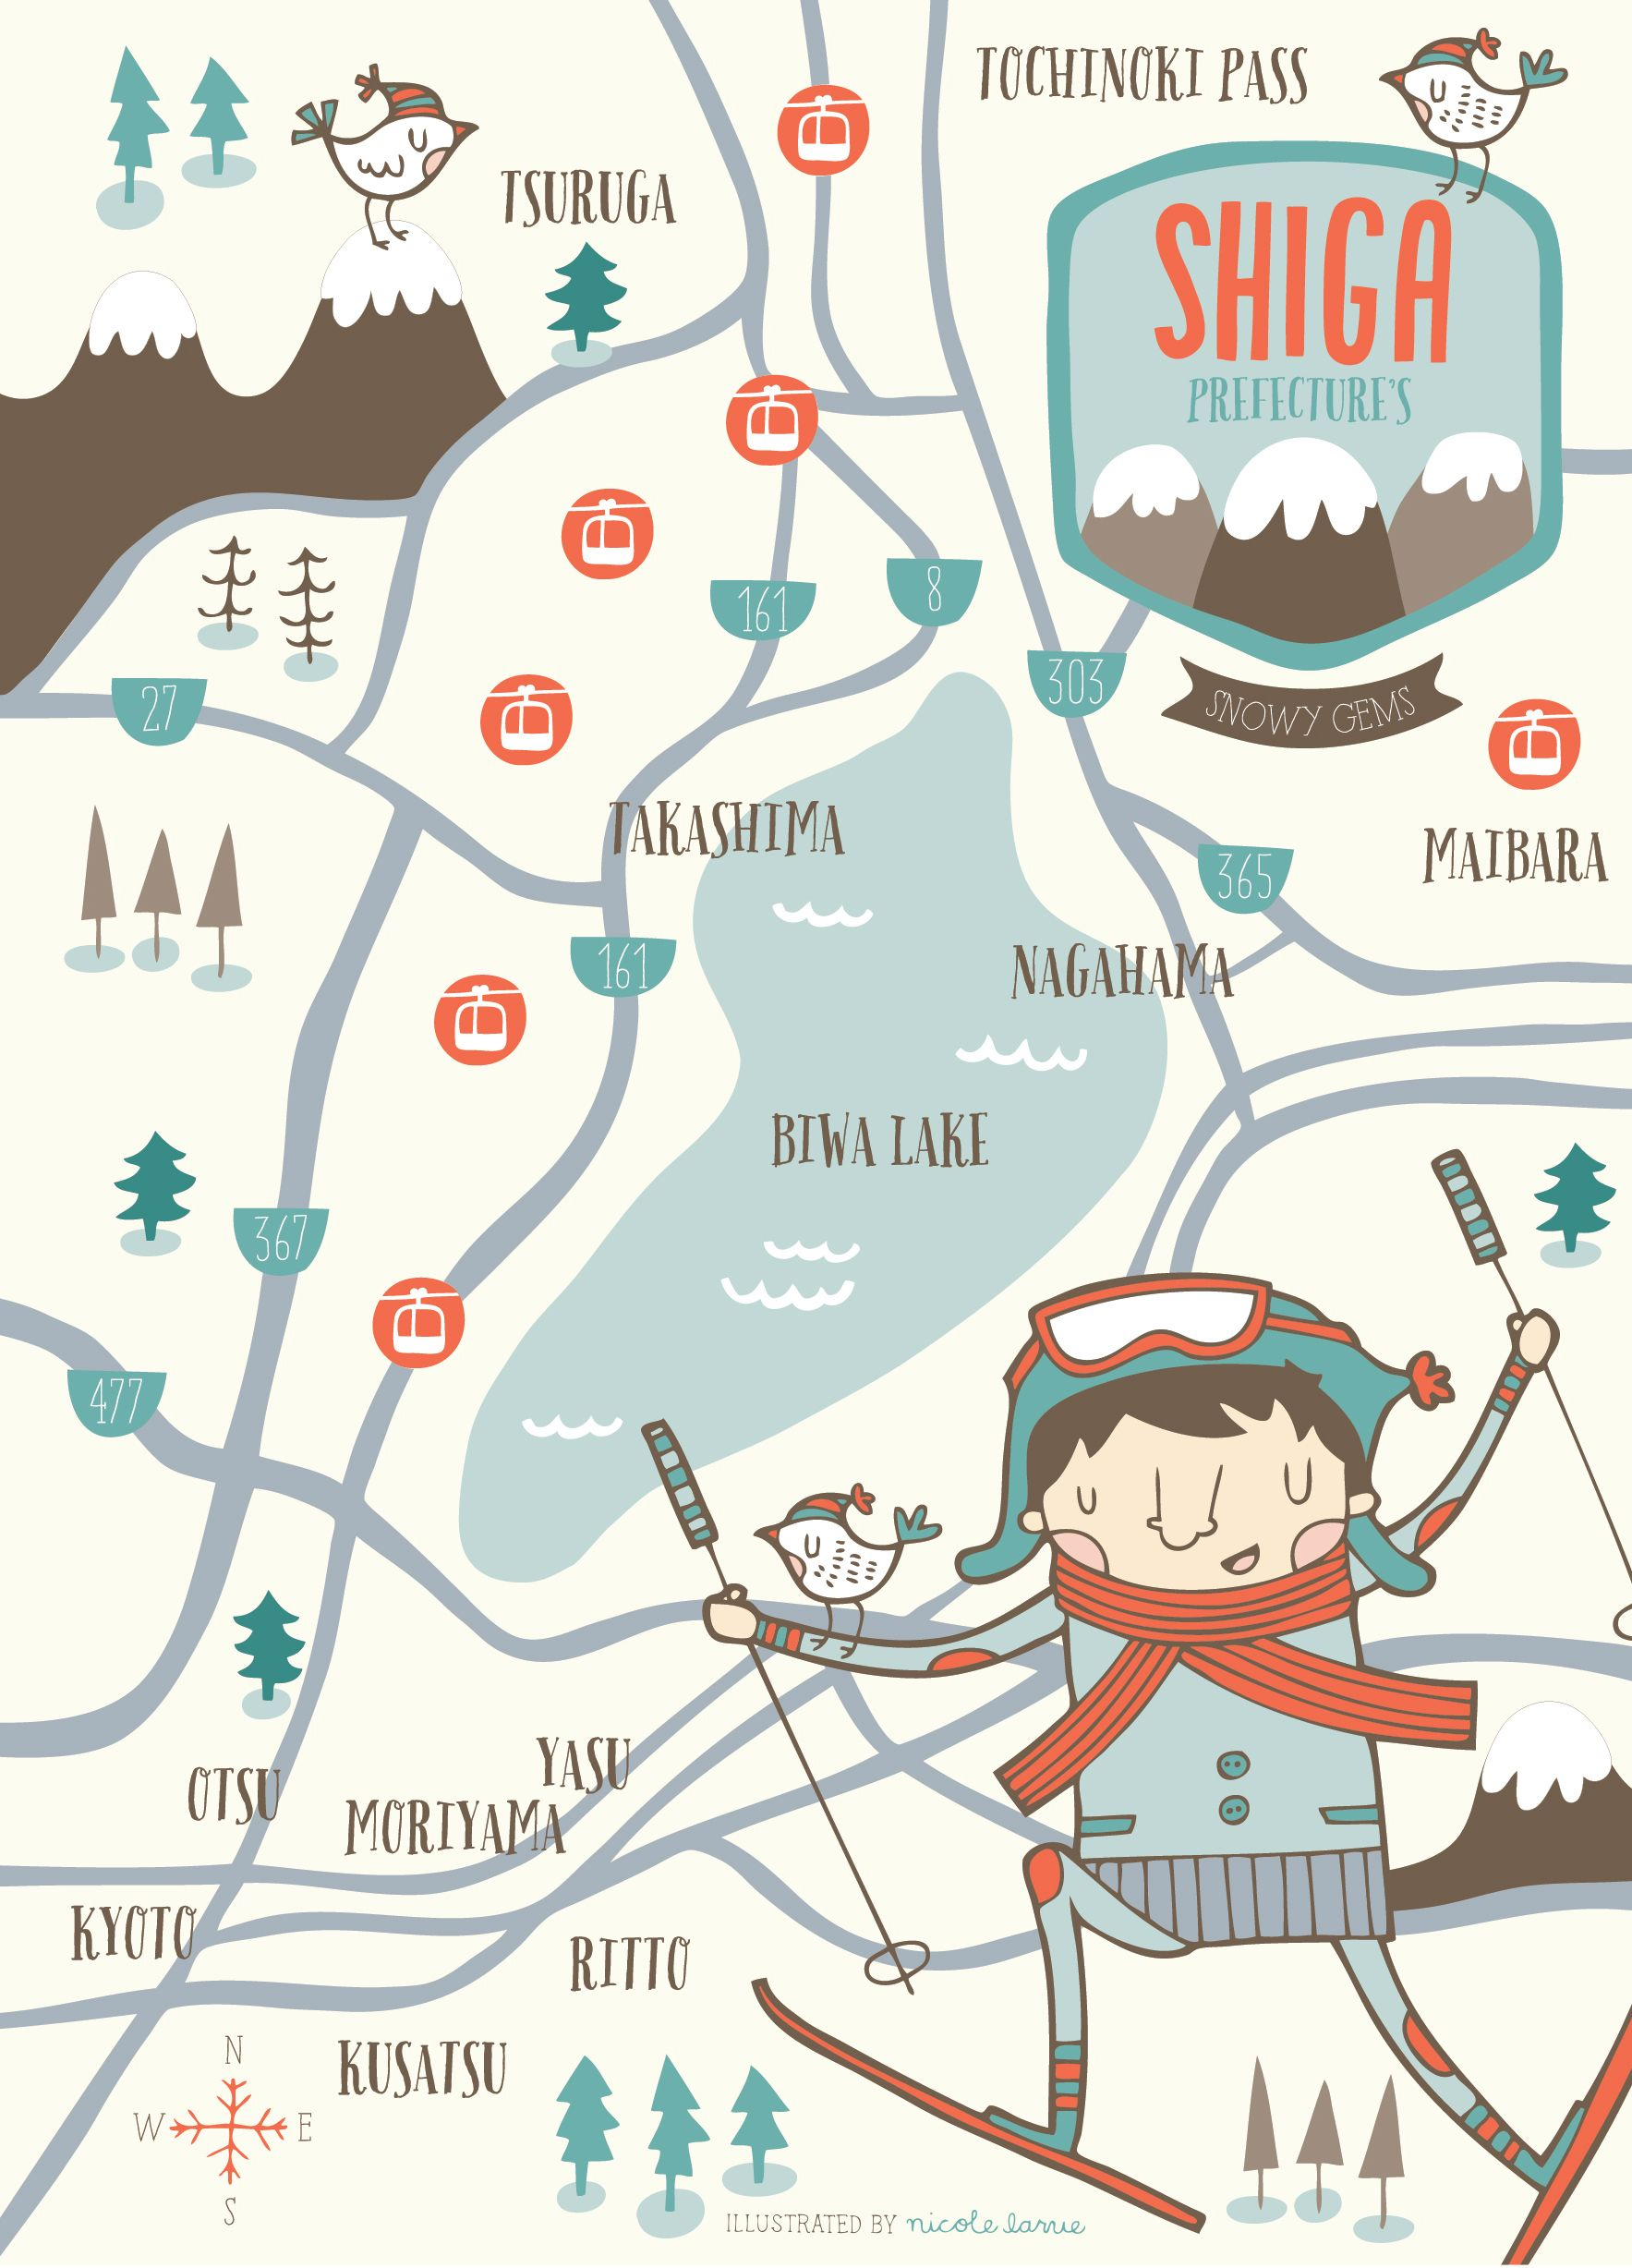 Shiga Prefecture Ski Resorts Map Nicole LaRue Illustration - Map of colorado ski resorts and cities